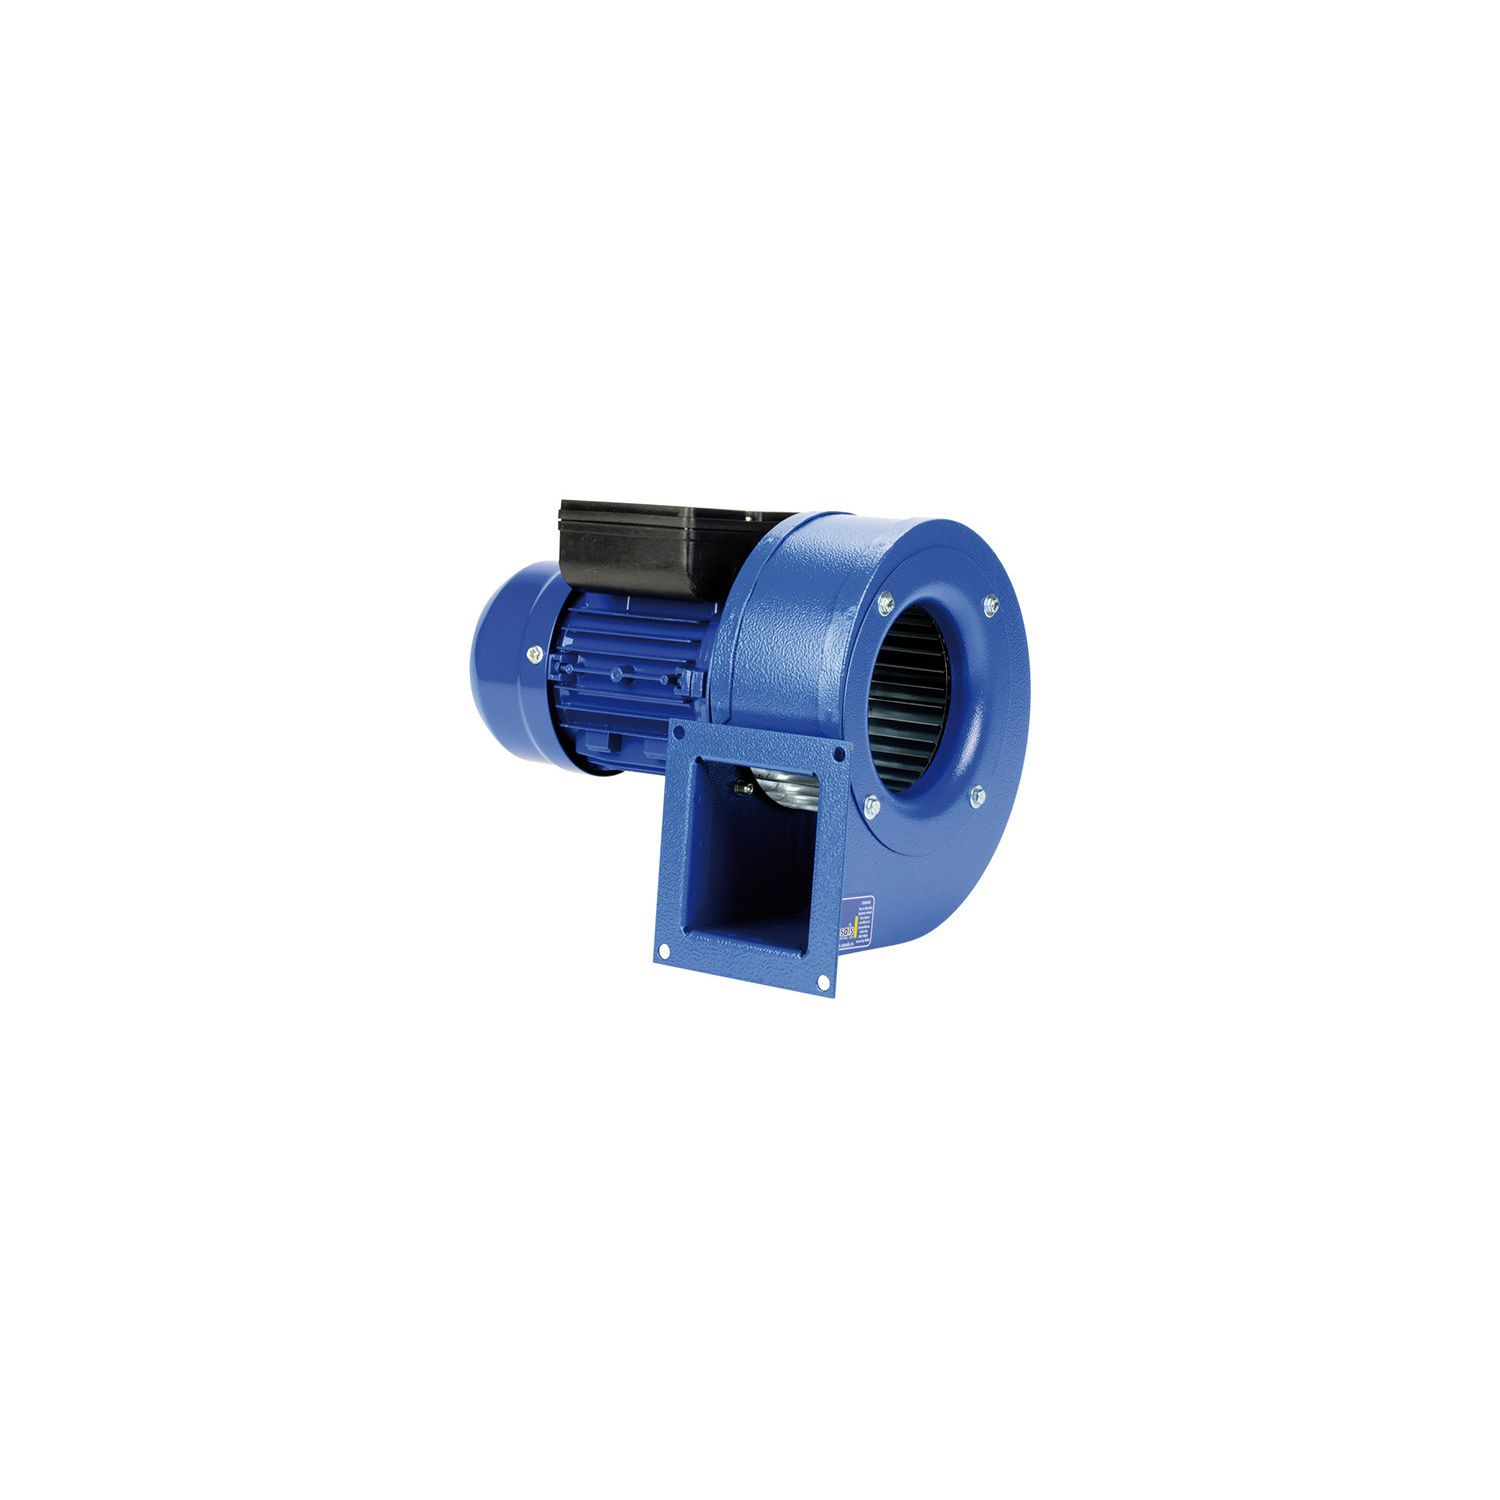 Ventilateur centrifuge turbine à action MB Ø125T4110